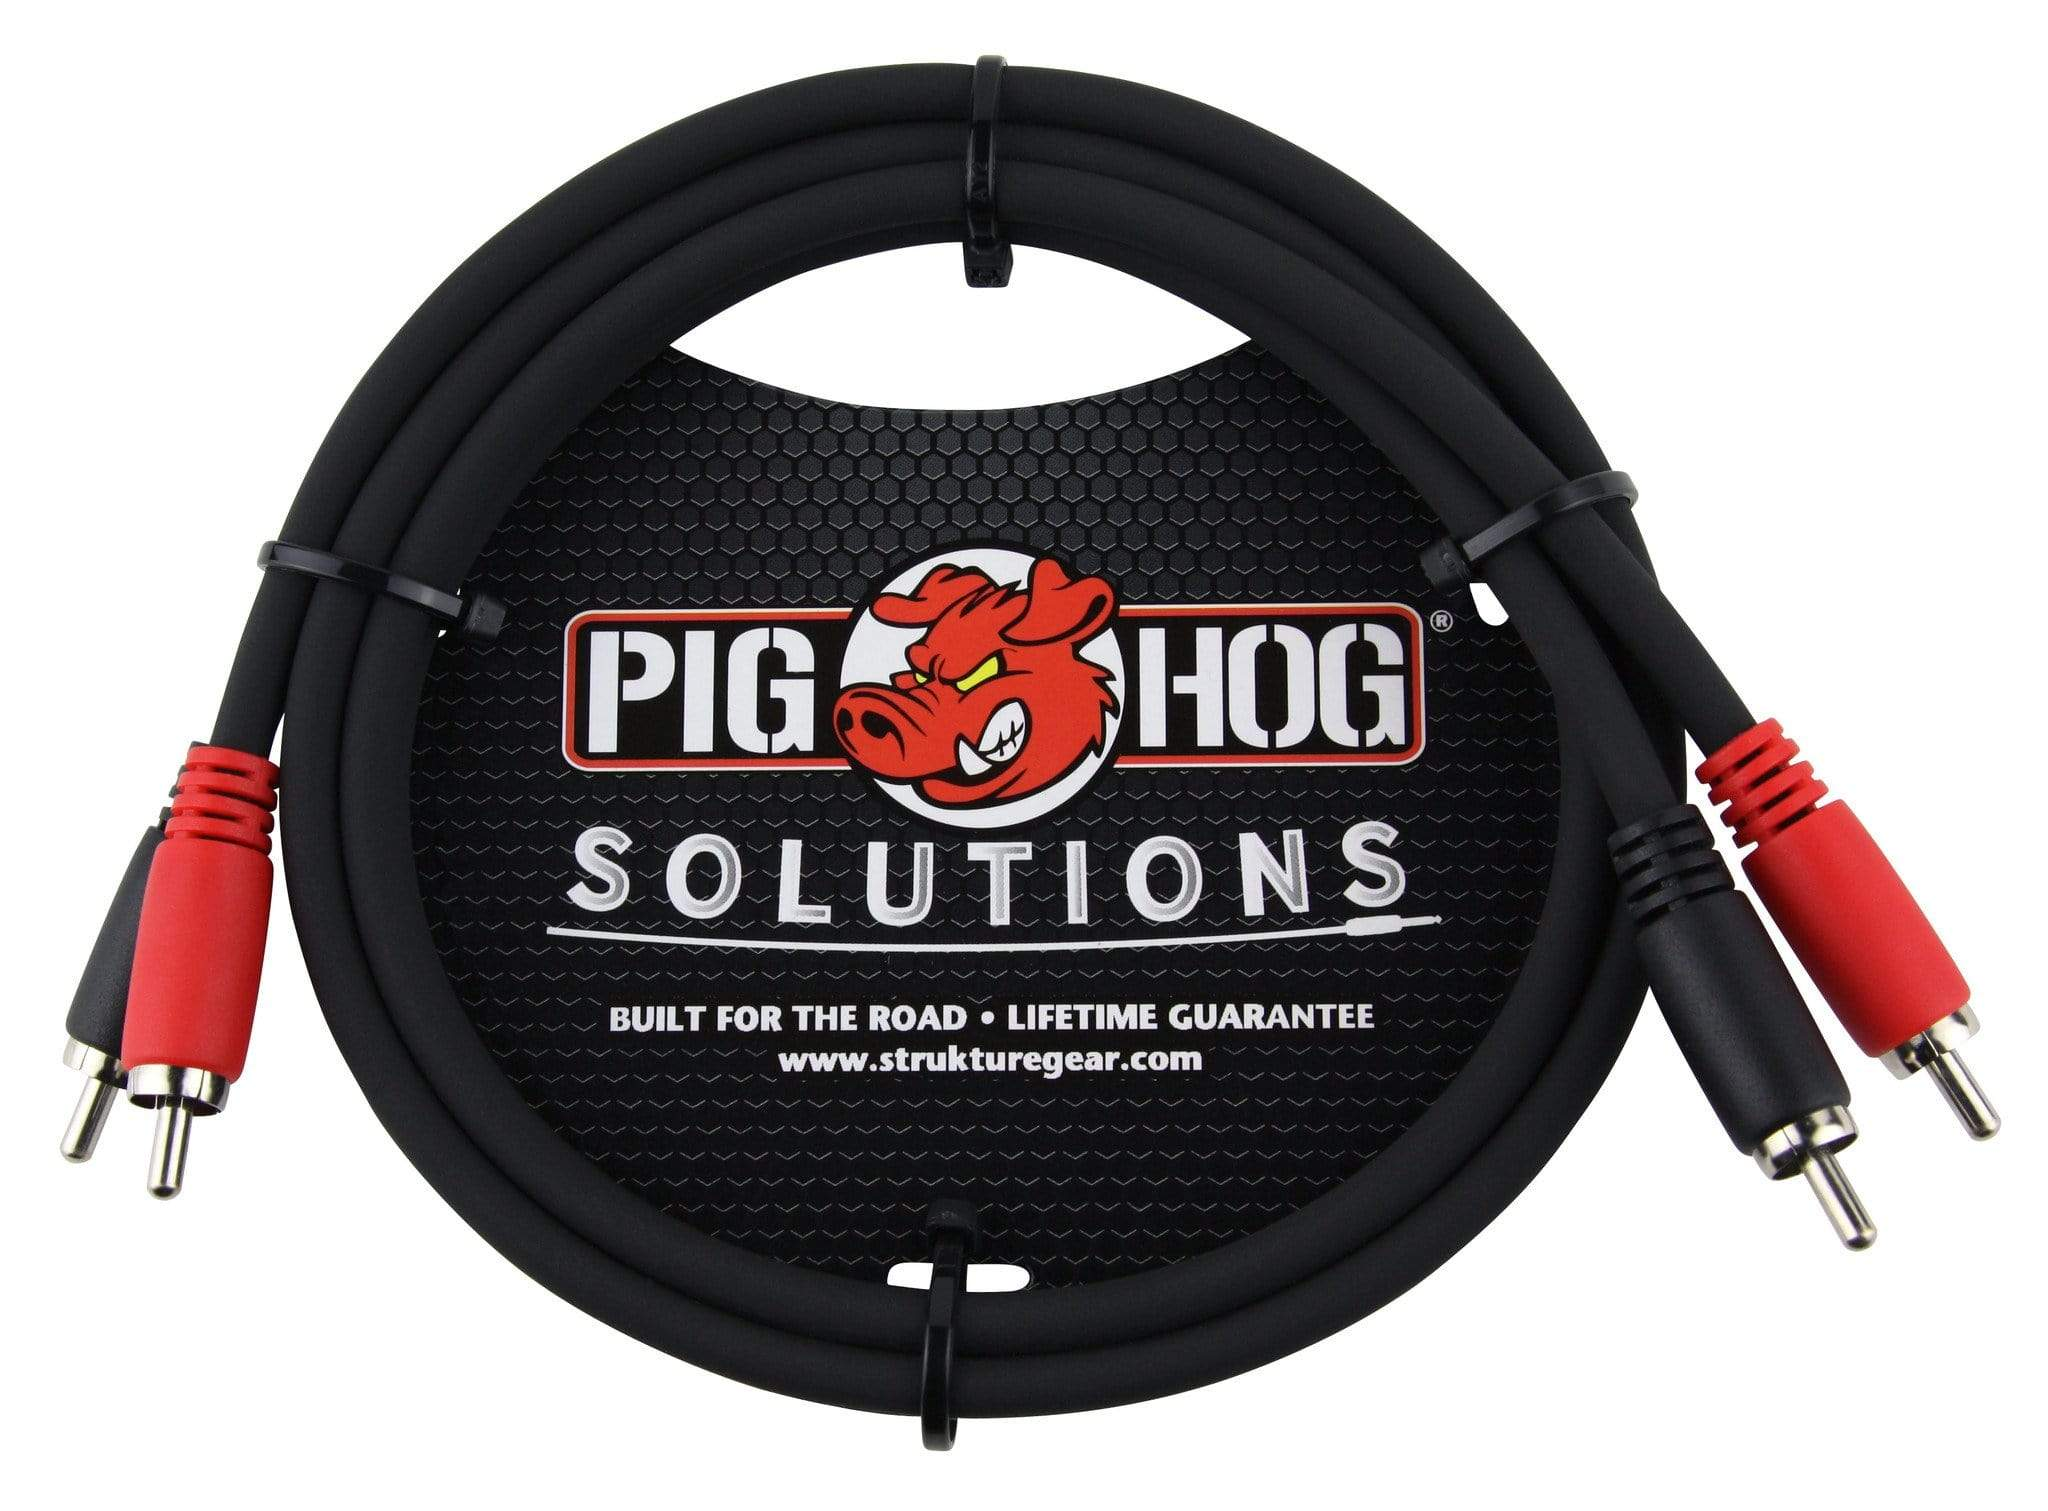 PIG HOG INTERCONNECT CABLES Pig Hog 3 ft RCA Dual Cable Male to Male Color Coded Red Black Heavy Duty PVC